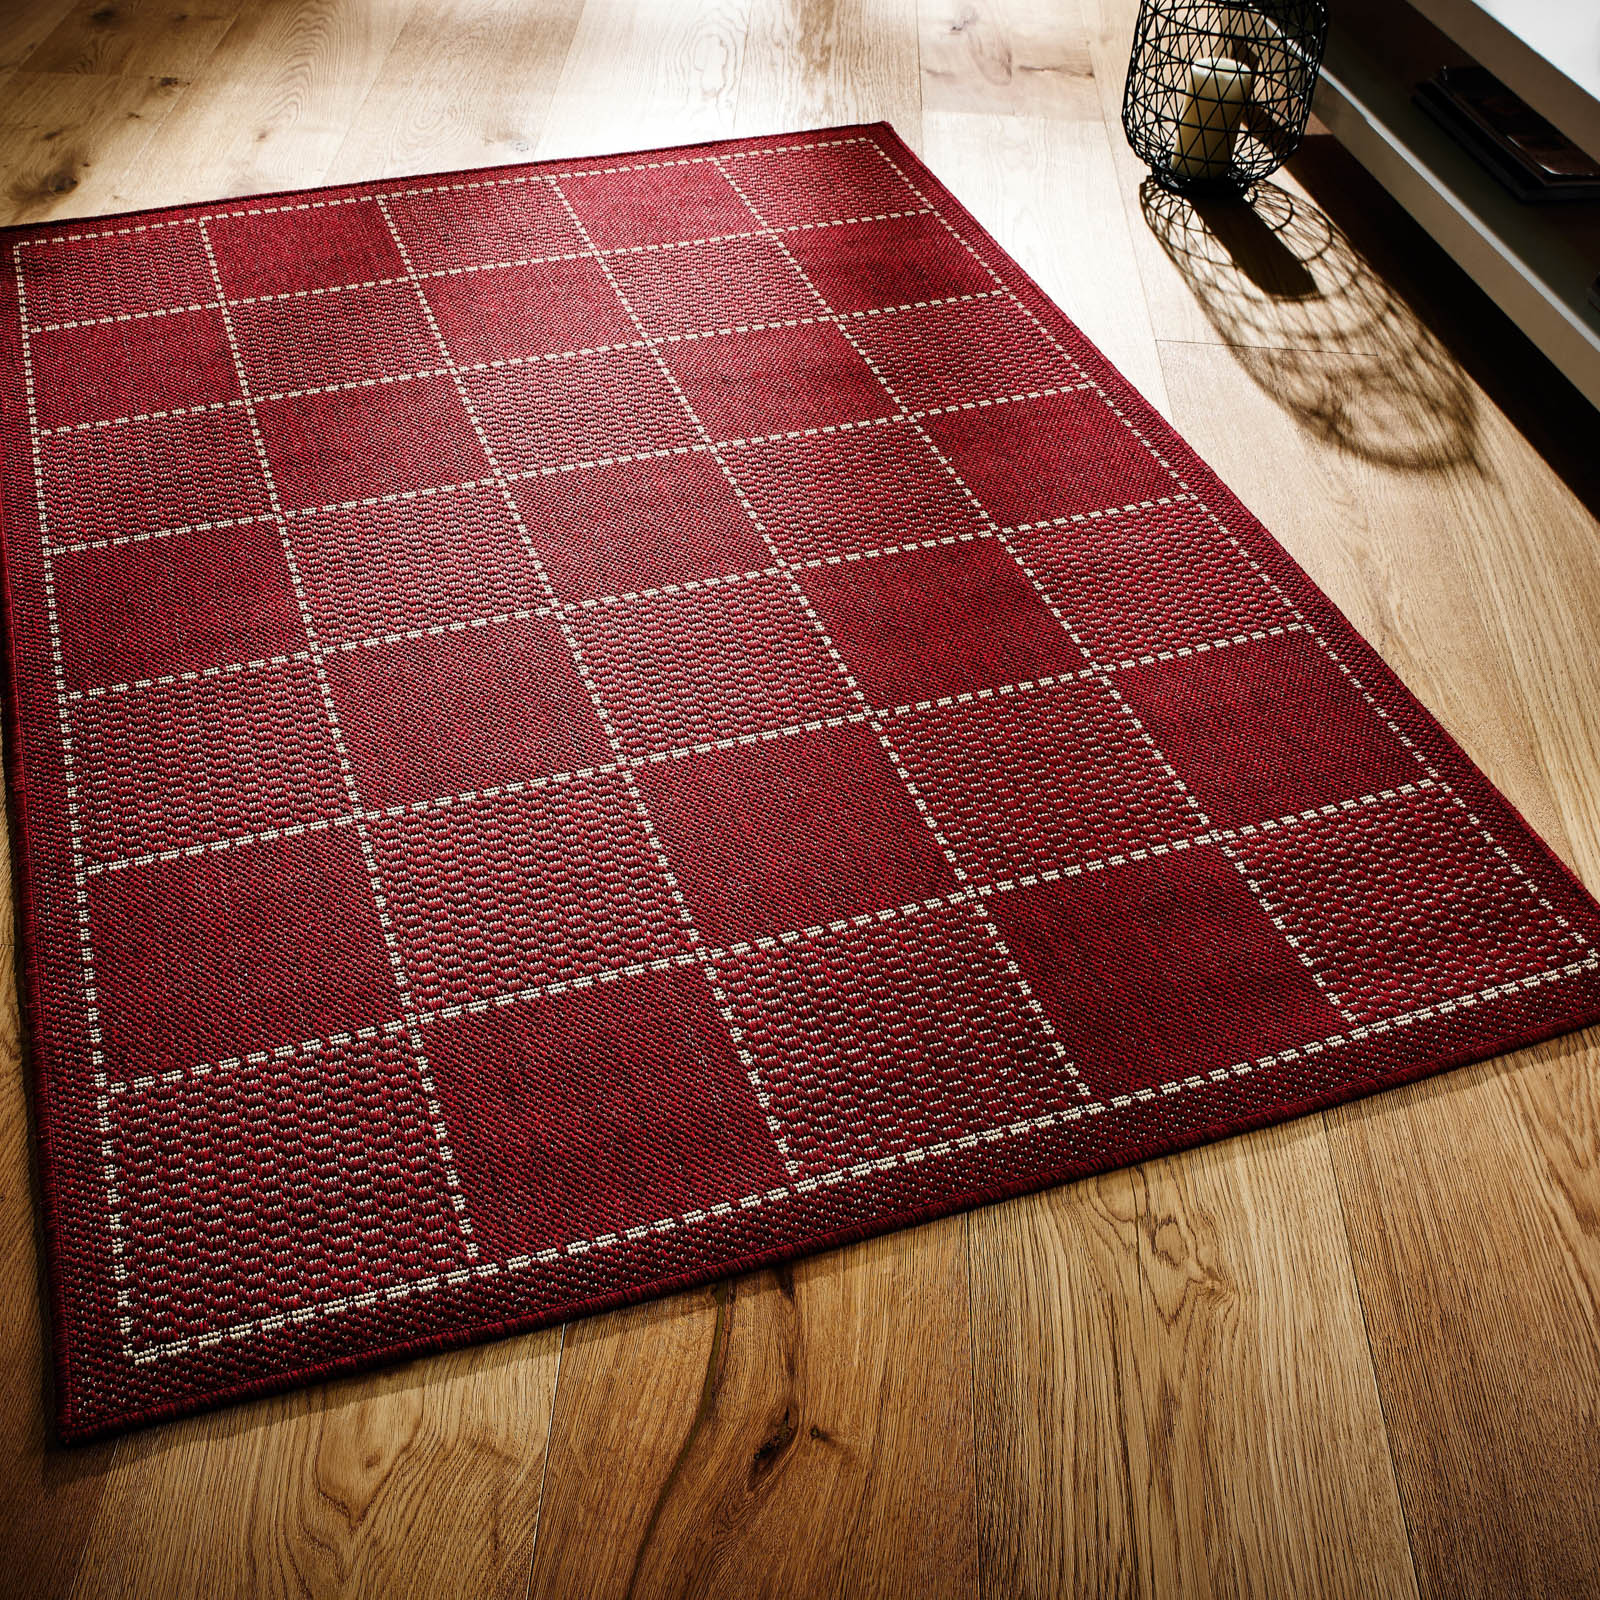 Super Sisalo Anti Slip Kitchen Rugs And Runners Online